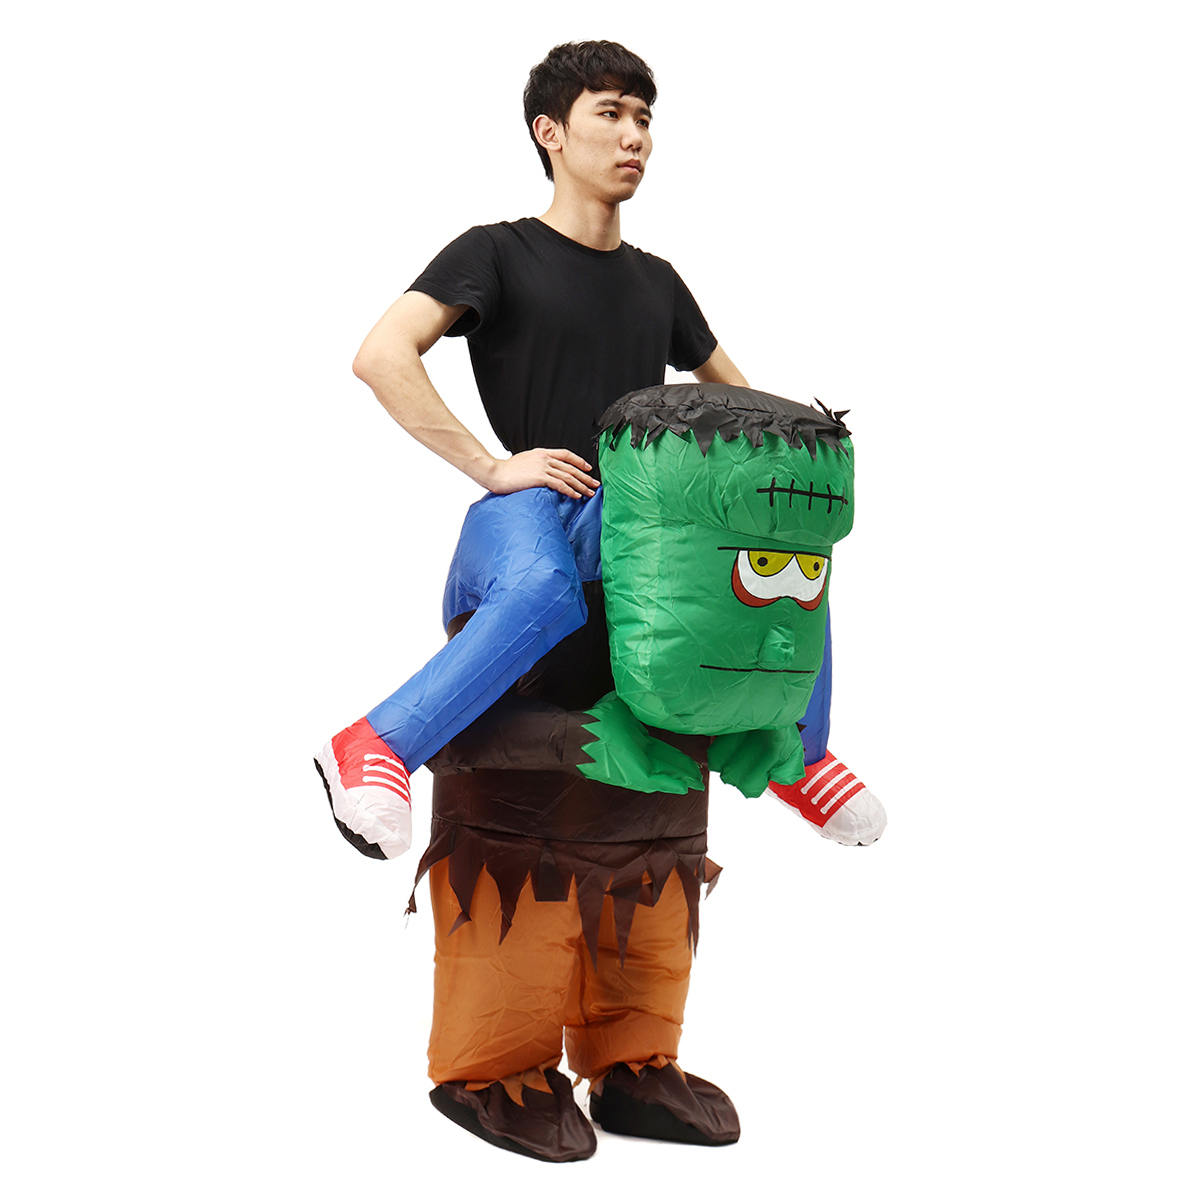 Adult Frankenstein Costume Scary Halloween Fancy Dress Inflatable Blow Up Suit